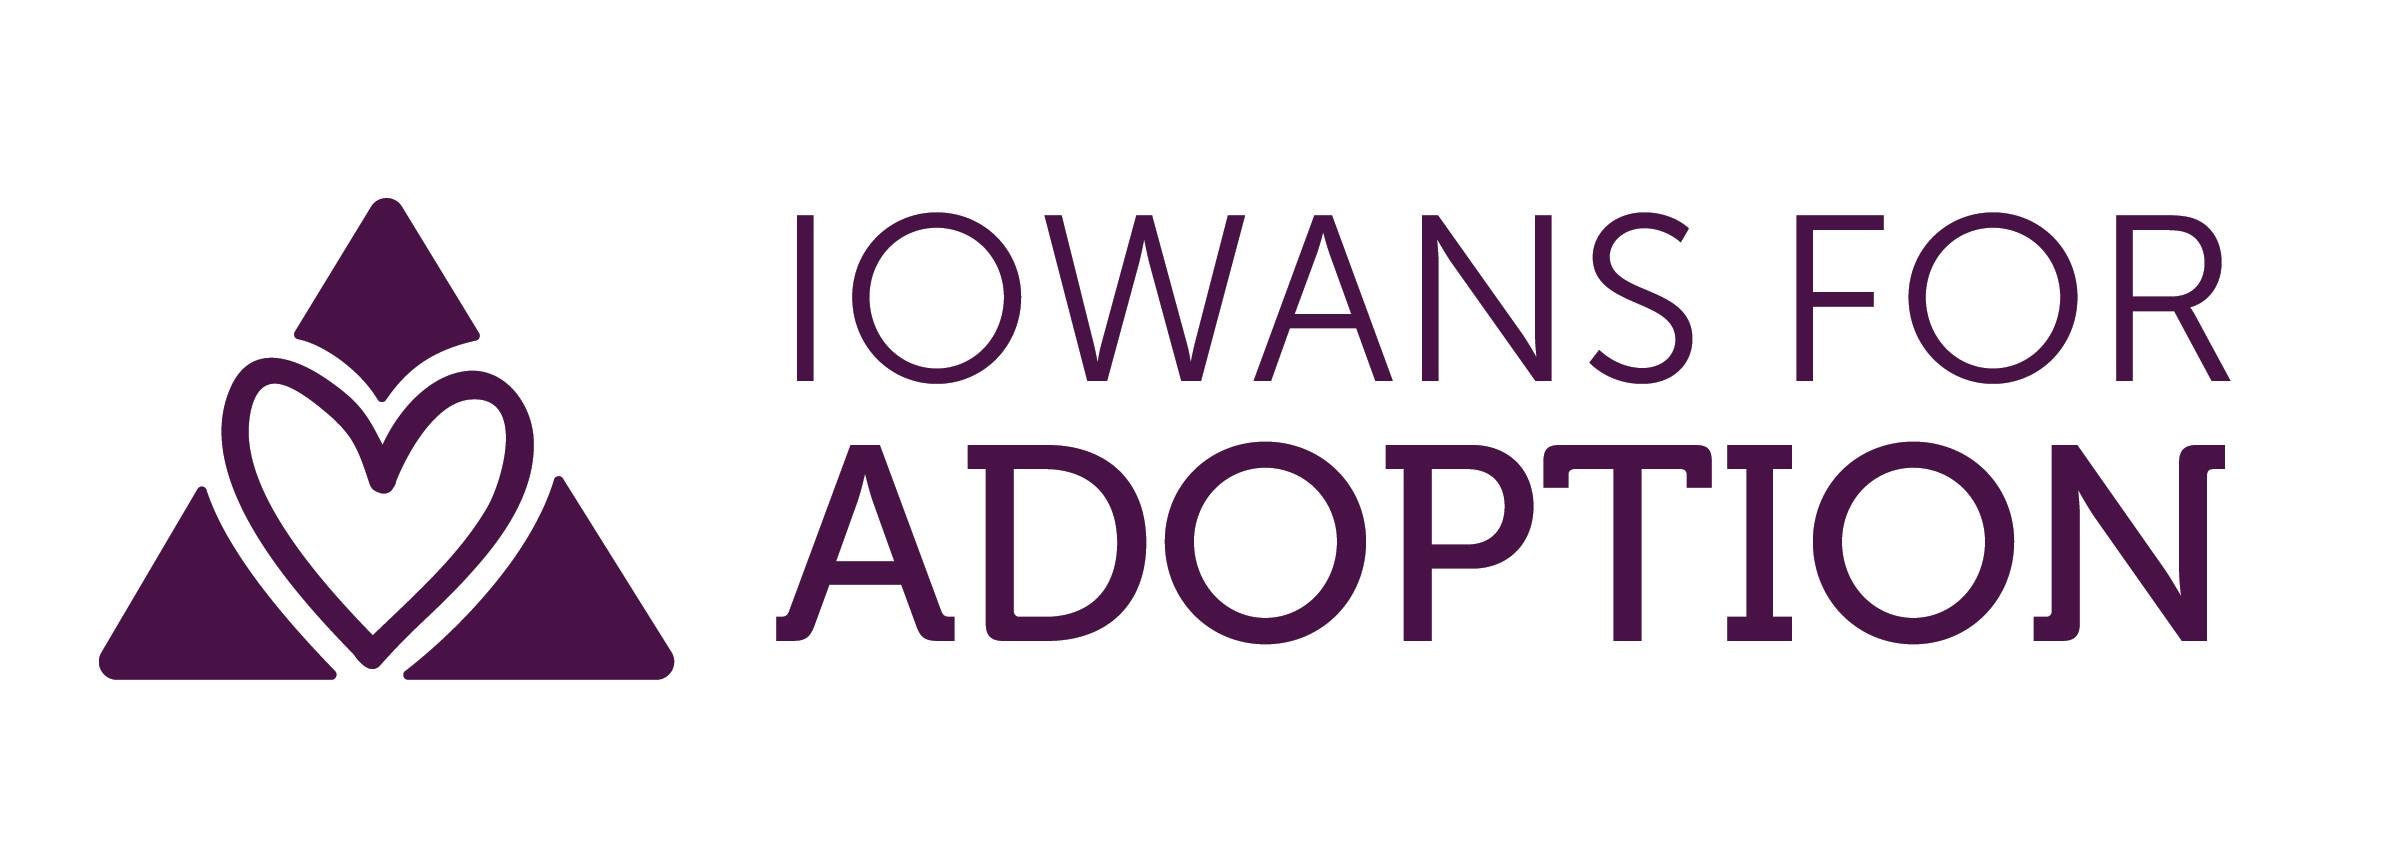 Iowans for Adoption - Iowans for Adoption is a 501(c)(3) non-profit, nonpartisan organization dedicated to promoting adoption through education, research and collaboration. We serve as a networking and advocacy forum to support adoption and all members of the adoption triad.https://www.iowansforadoption.org/